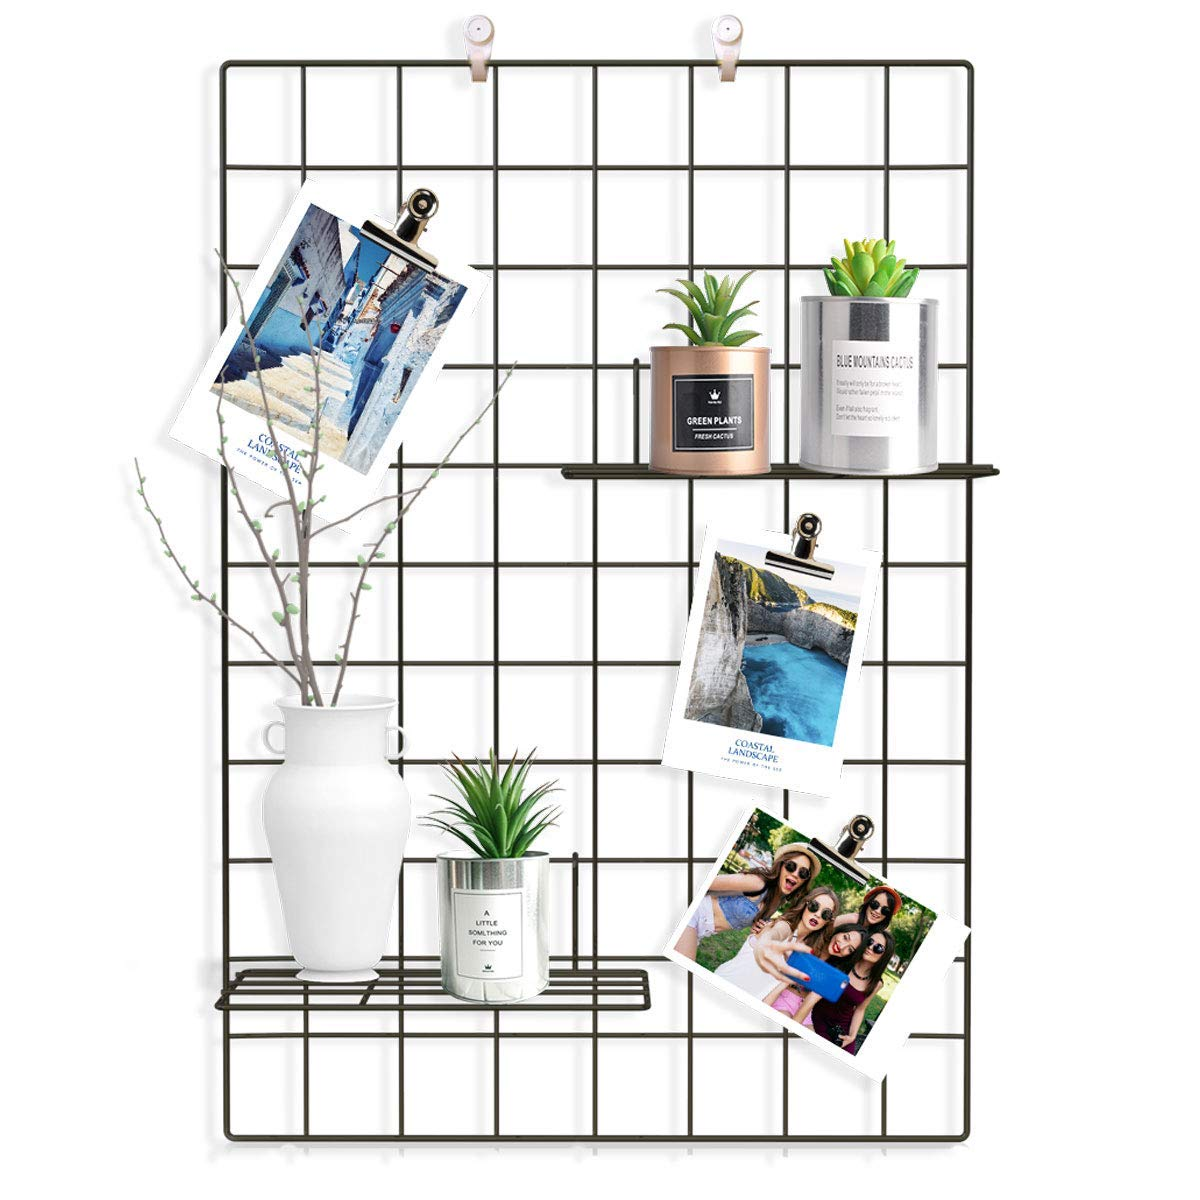 Great grid wall for photo display